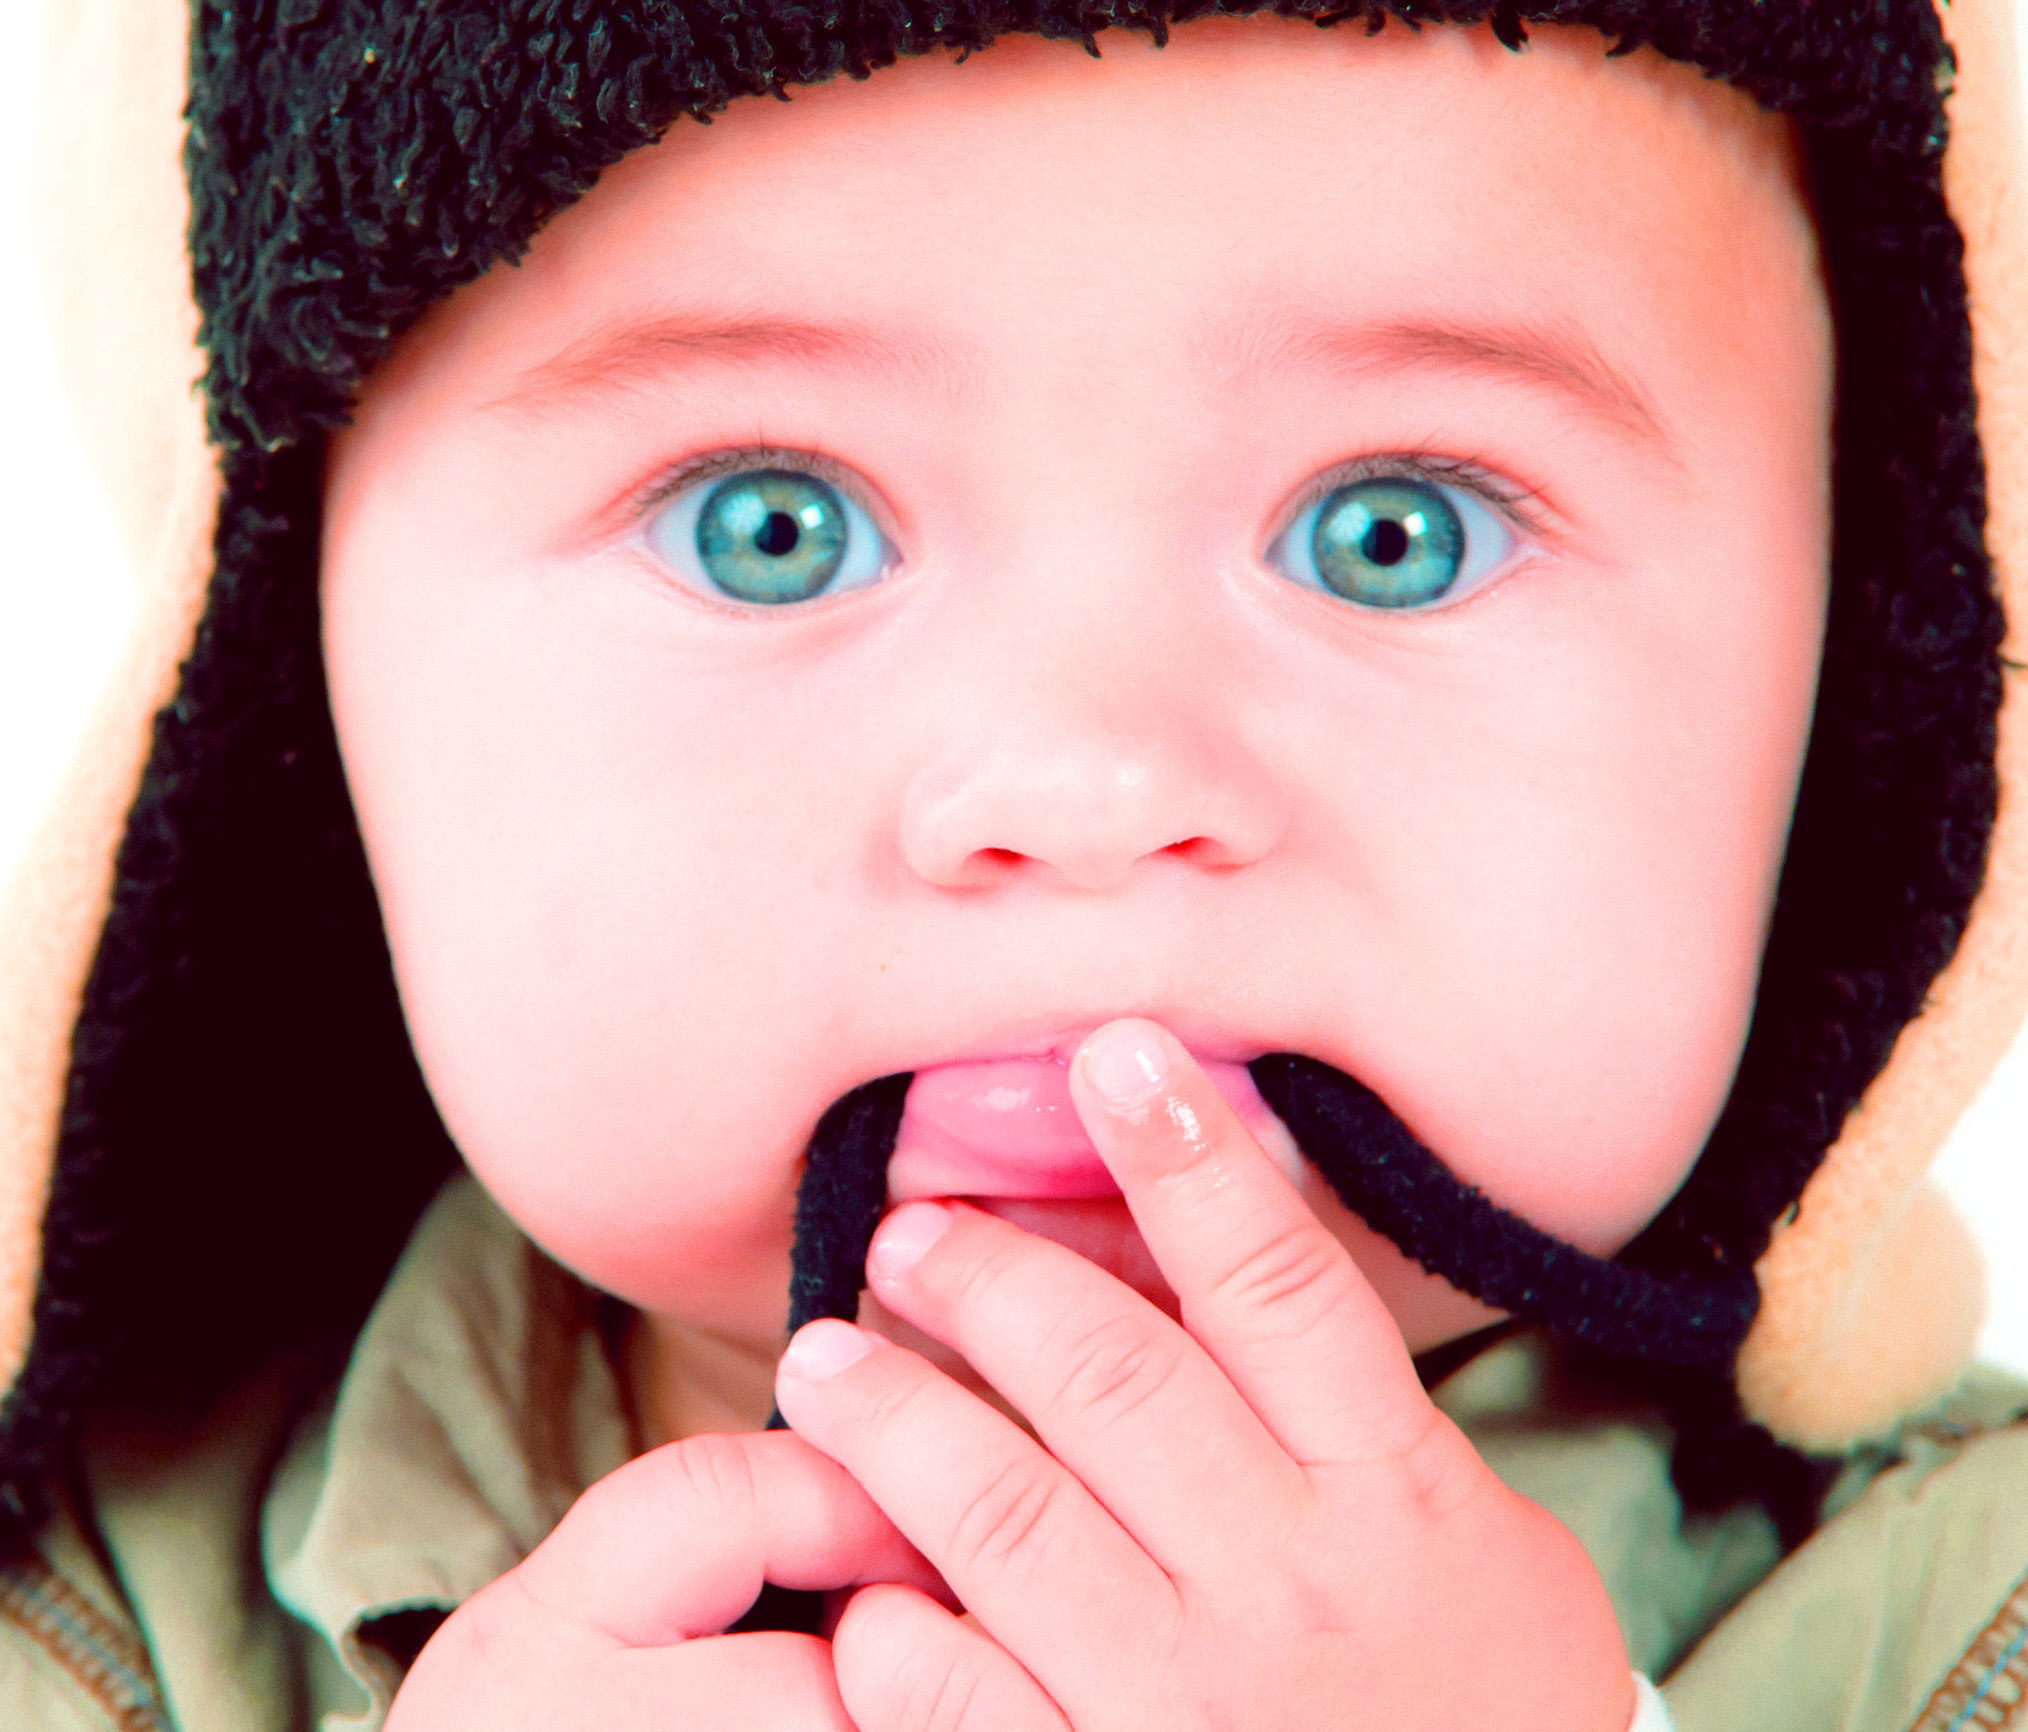 Baby-Boy-Images-11